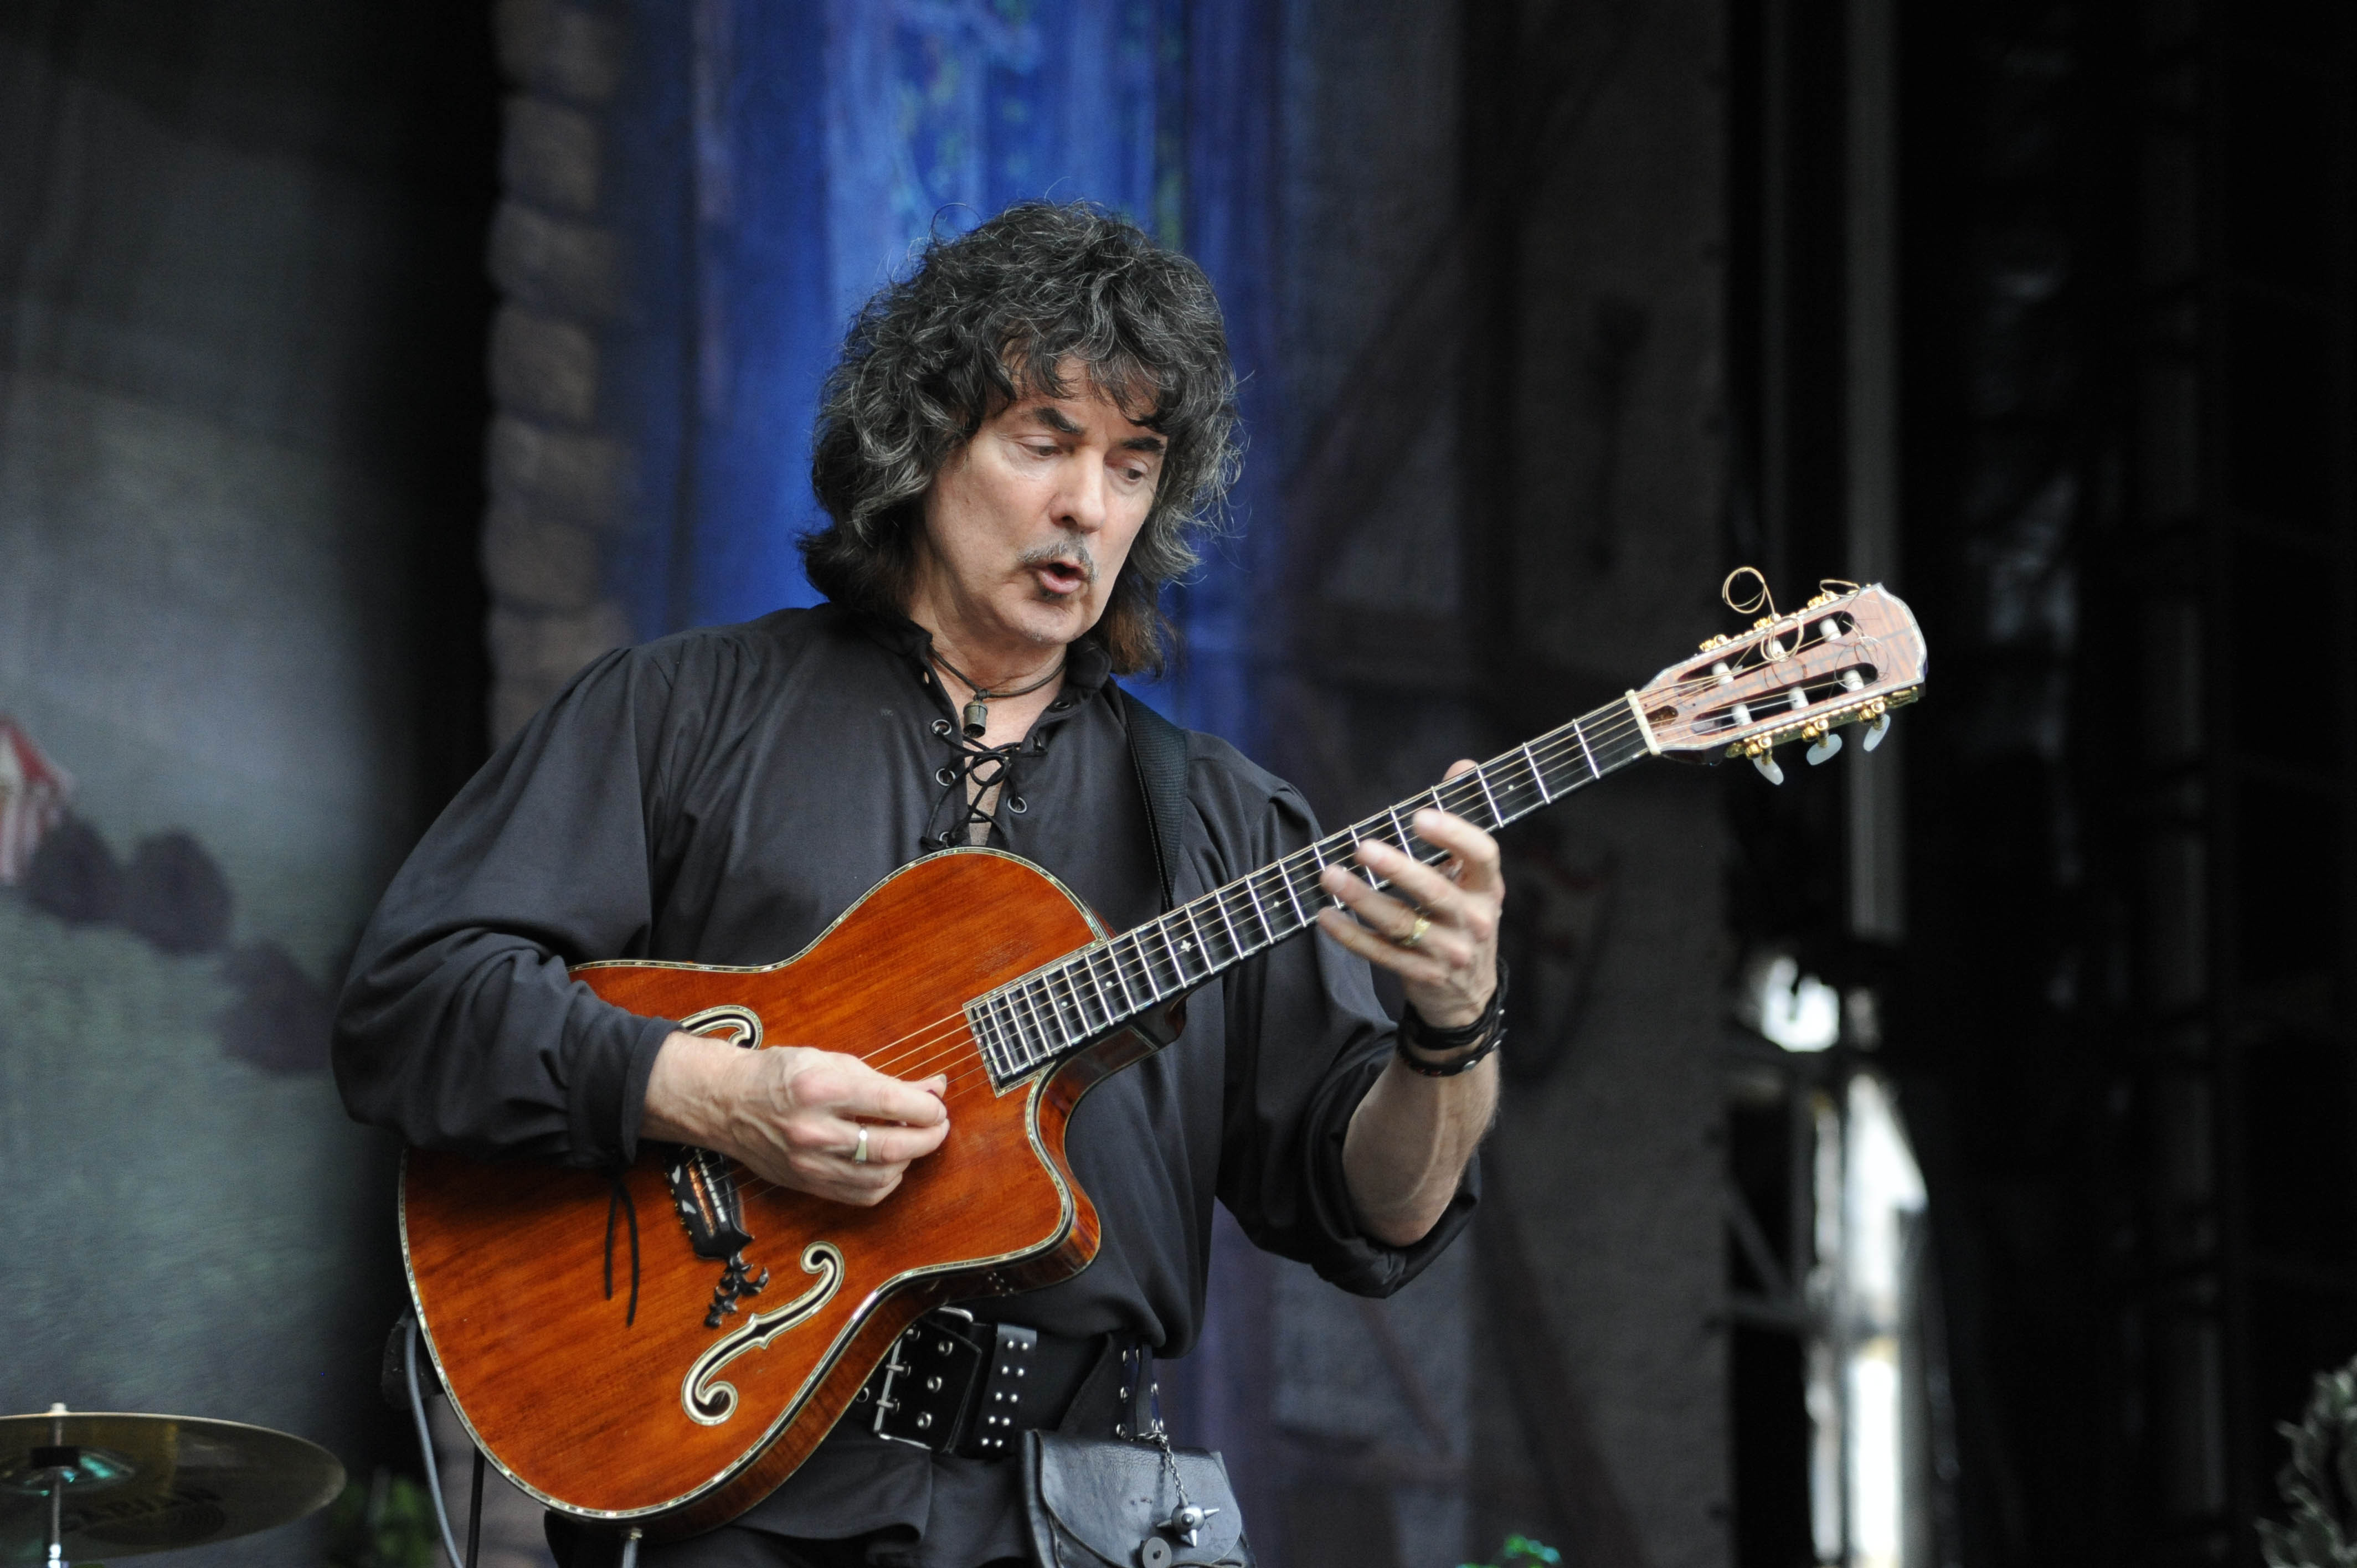 Deep Purple Guitarist Ritchie Blackmore Won't Attend Hall of Fame Ceremony